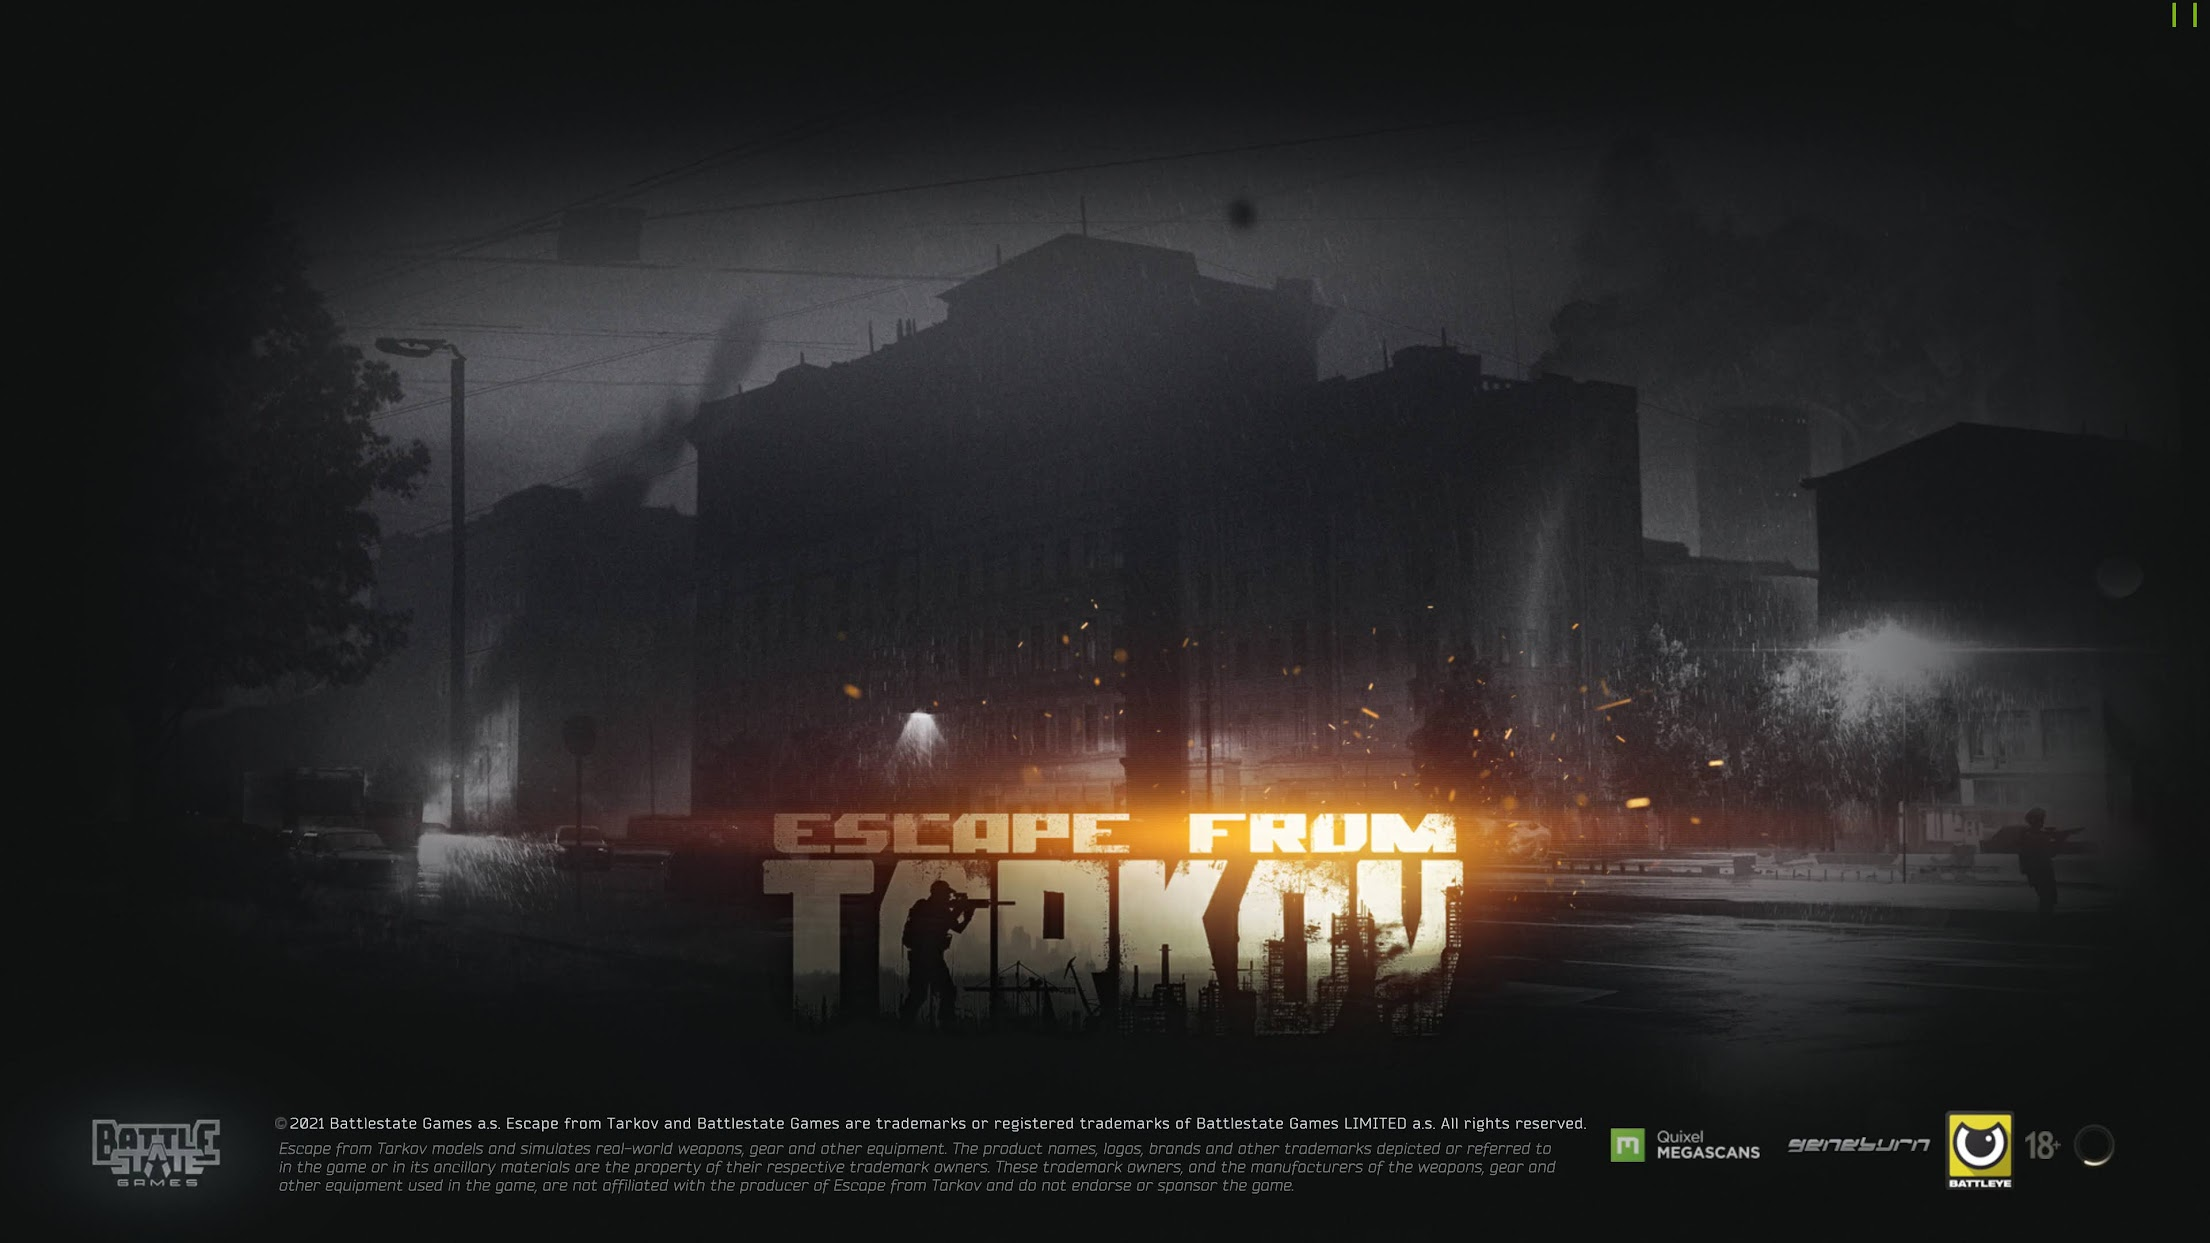 Escape From Tarkov #1 初めてのタルコフ